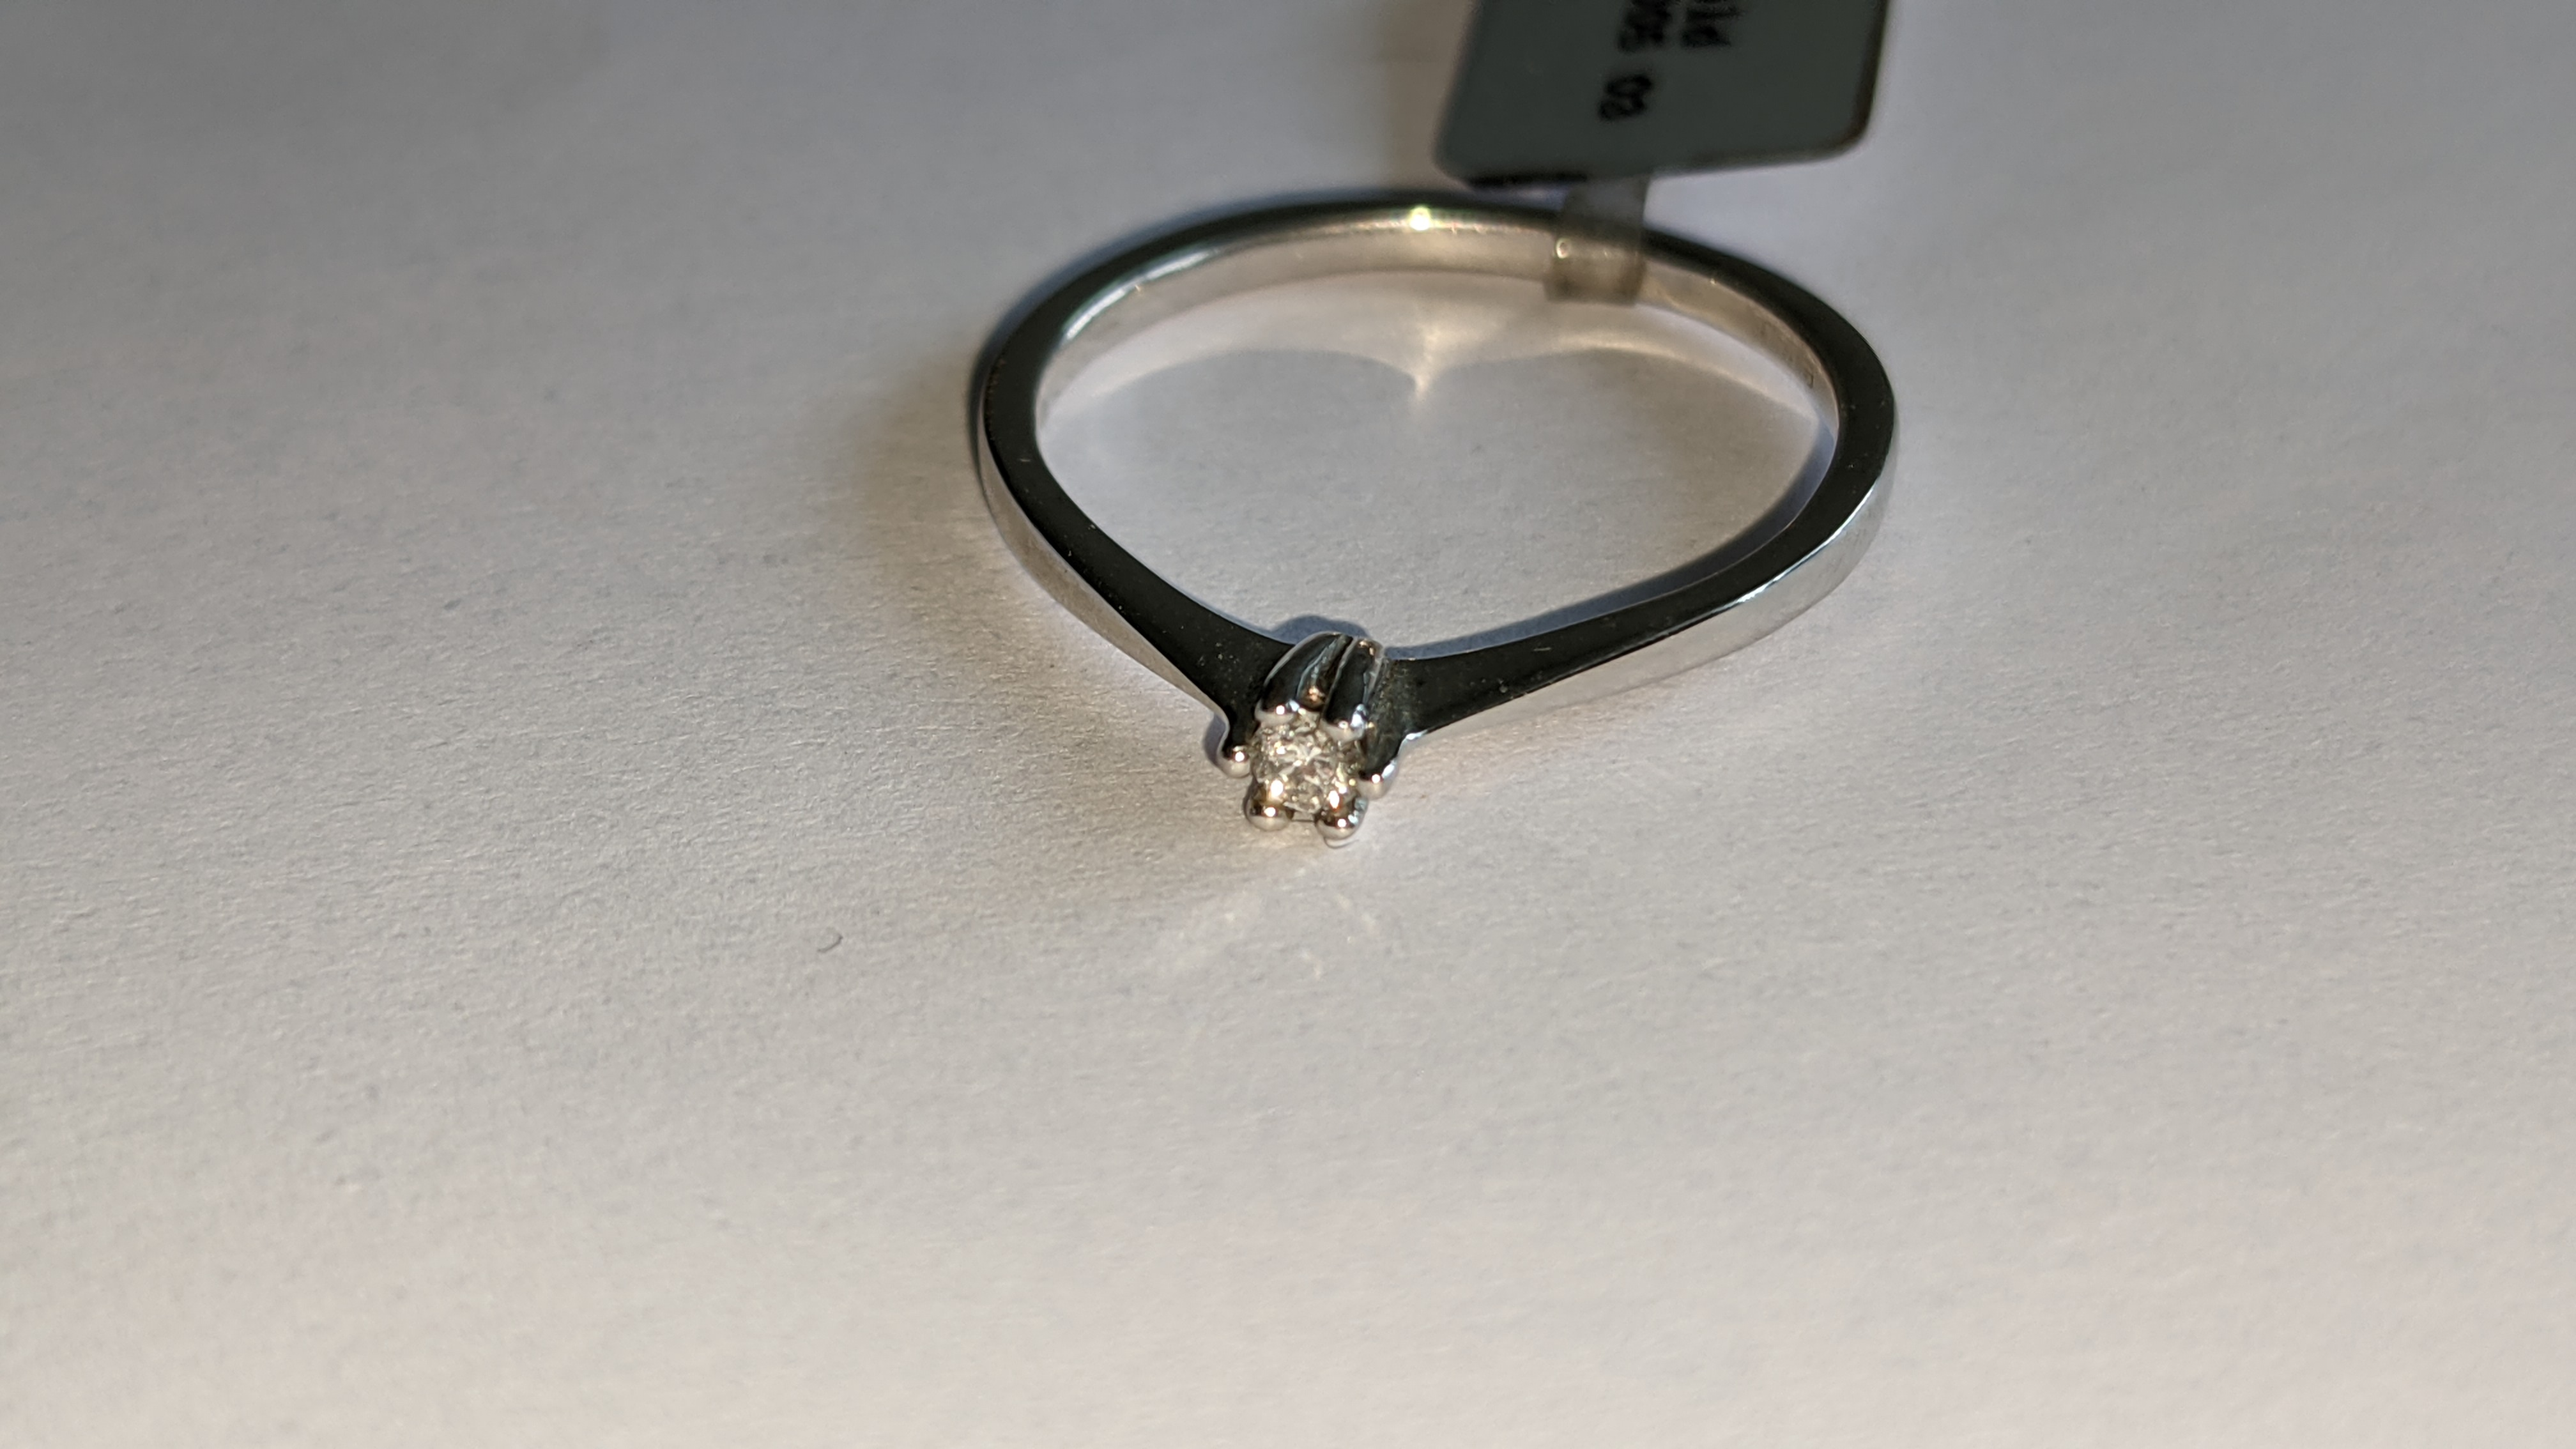 18ct white gold ring with central 0.05ct diamond. RRP £461 - Image 8 of 16